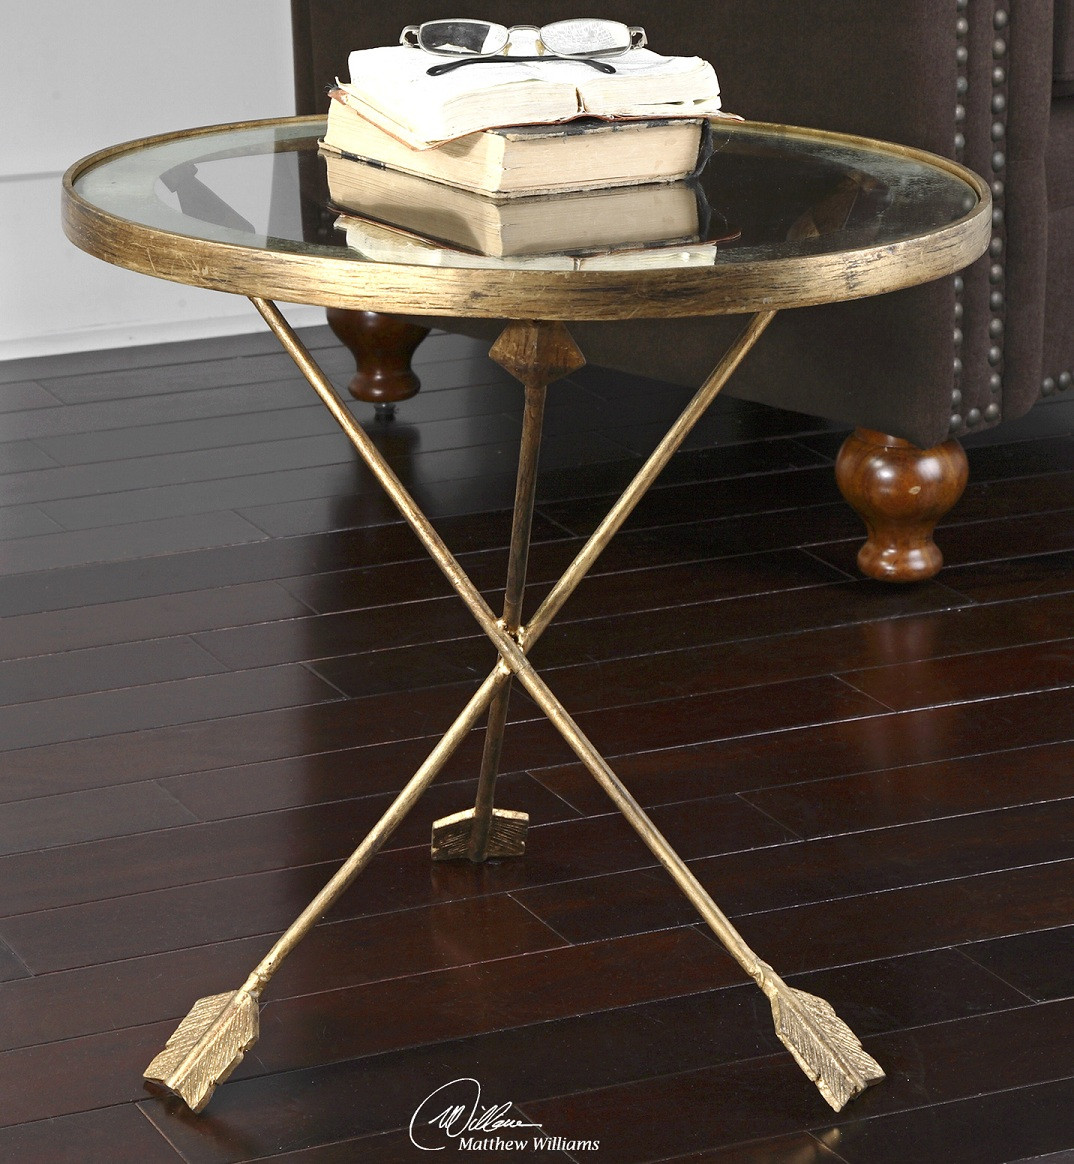 Slim round end table modern accent table with drawer calvin end table - Gold Round Side Table With Glass Top